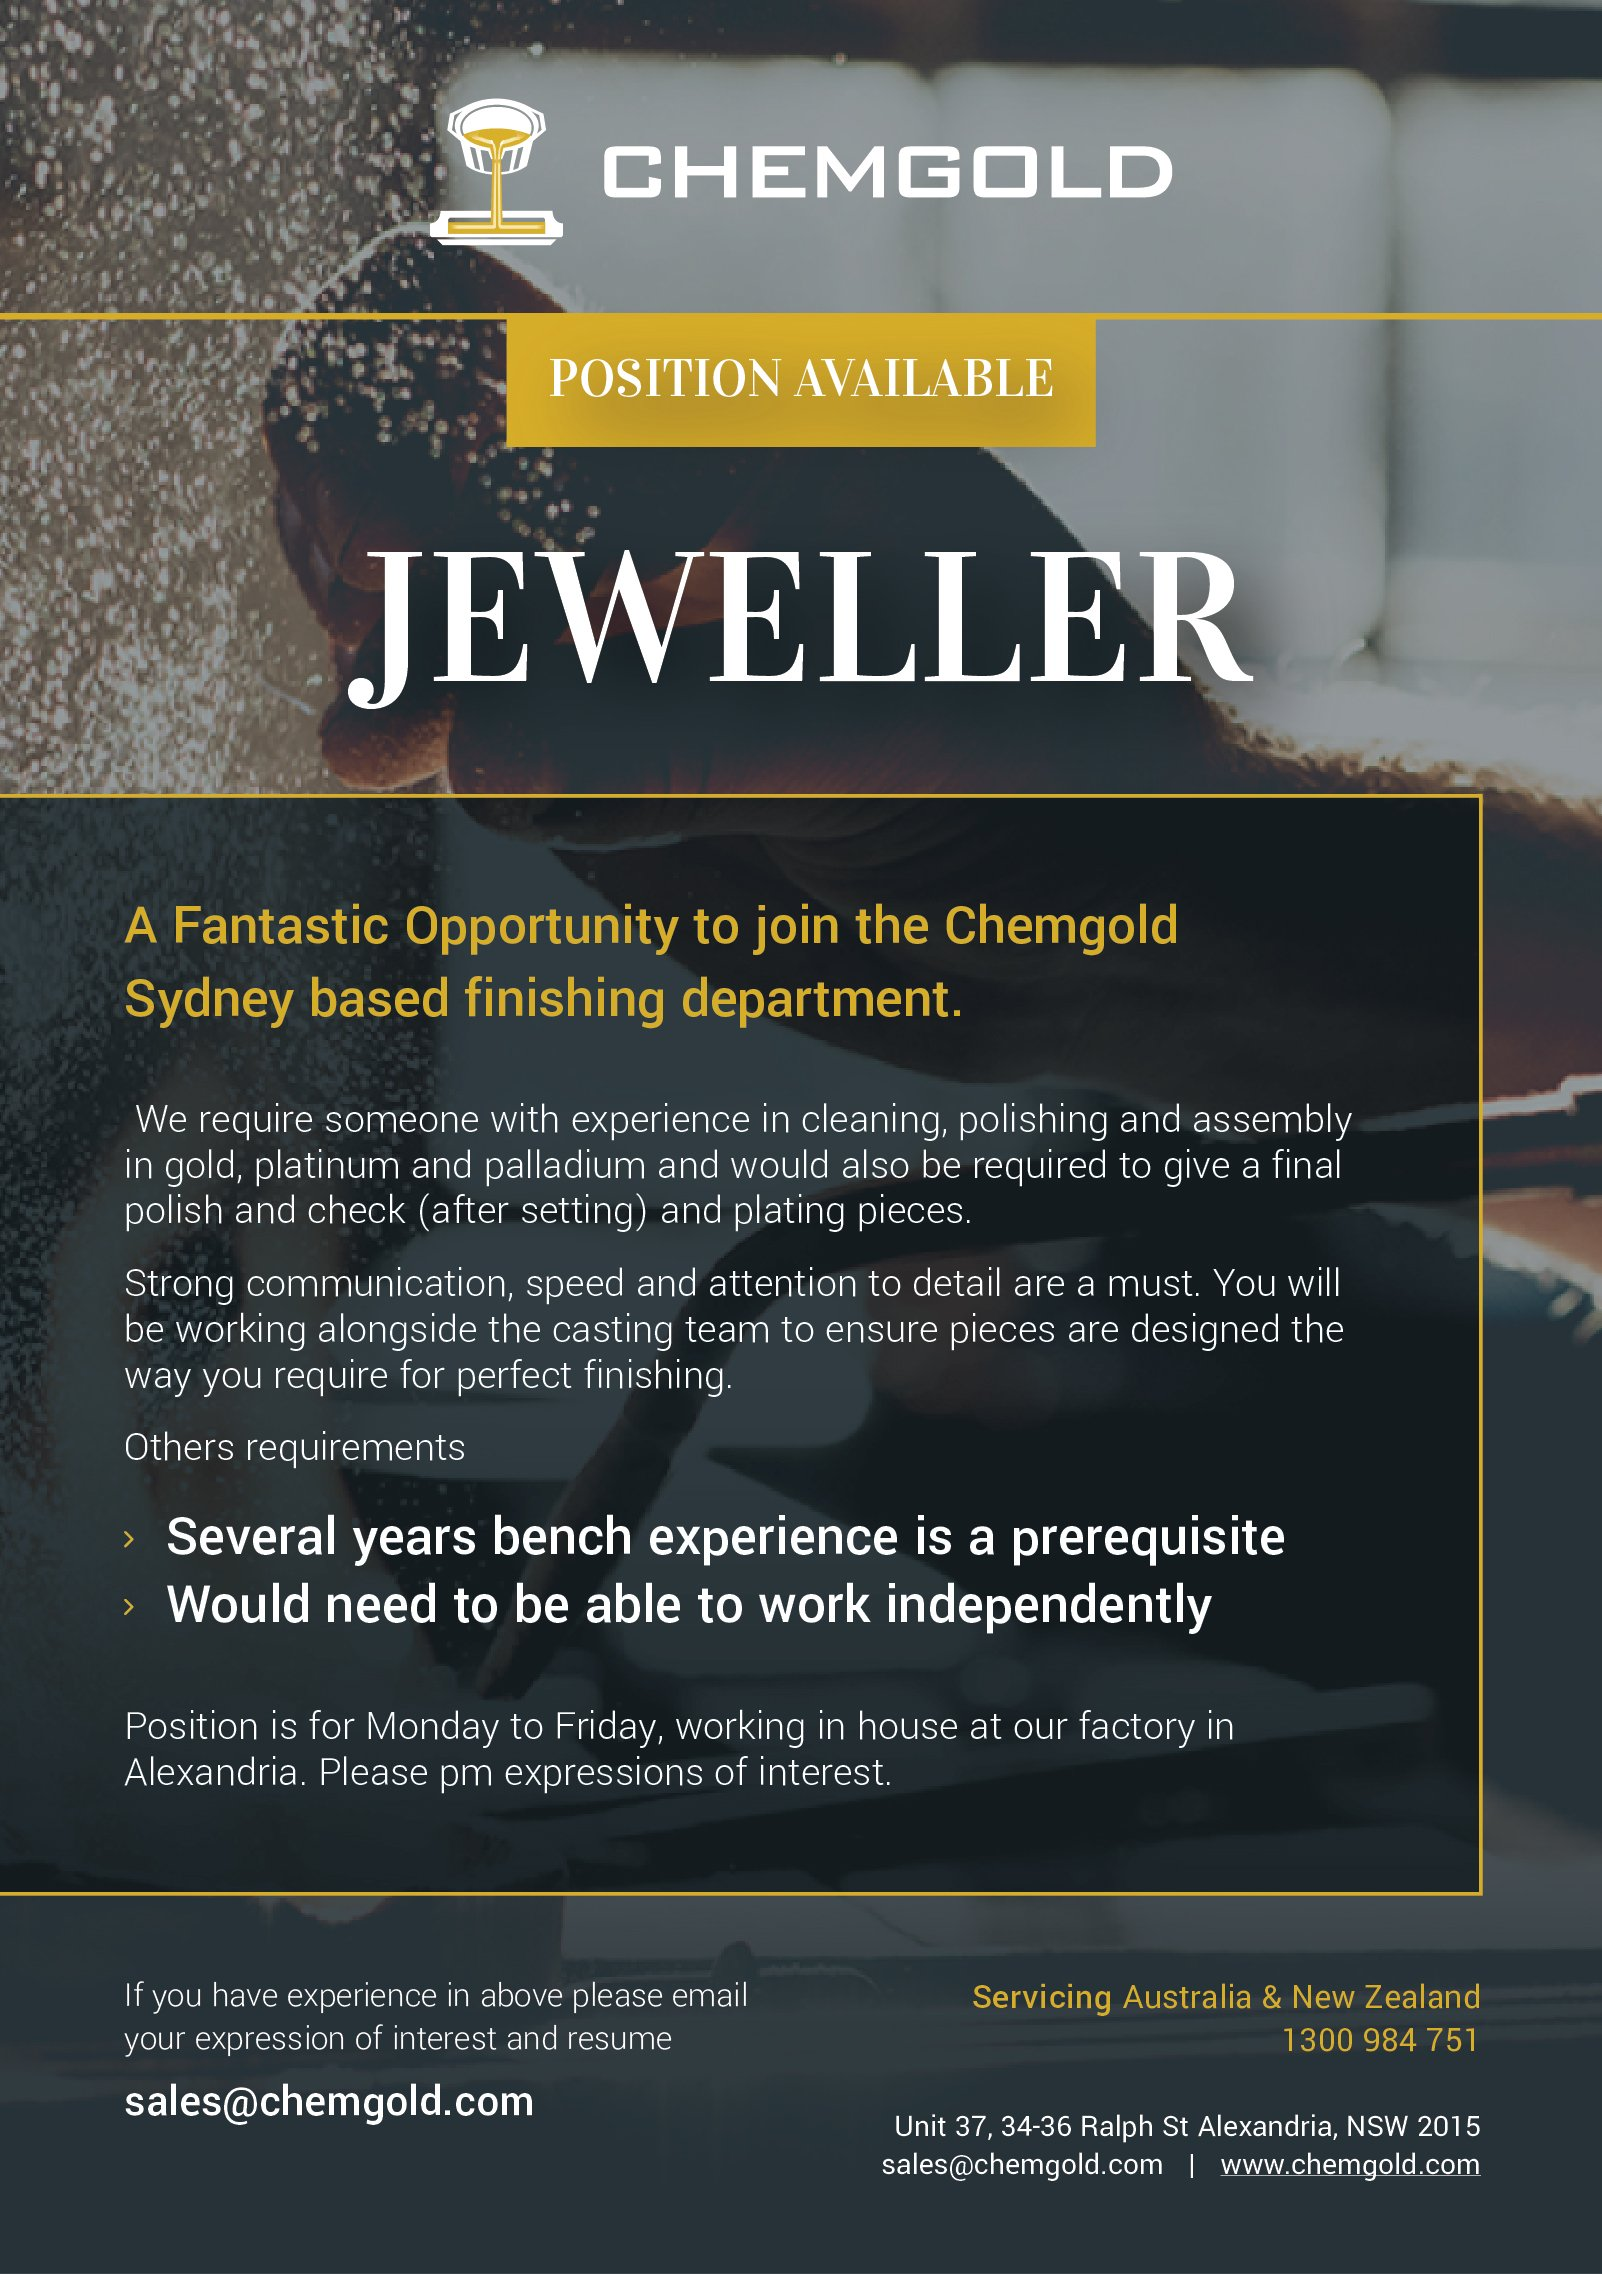 Chemgold Position Available - Jeweller